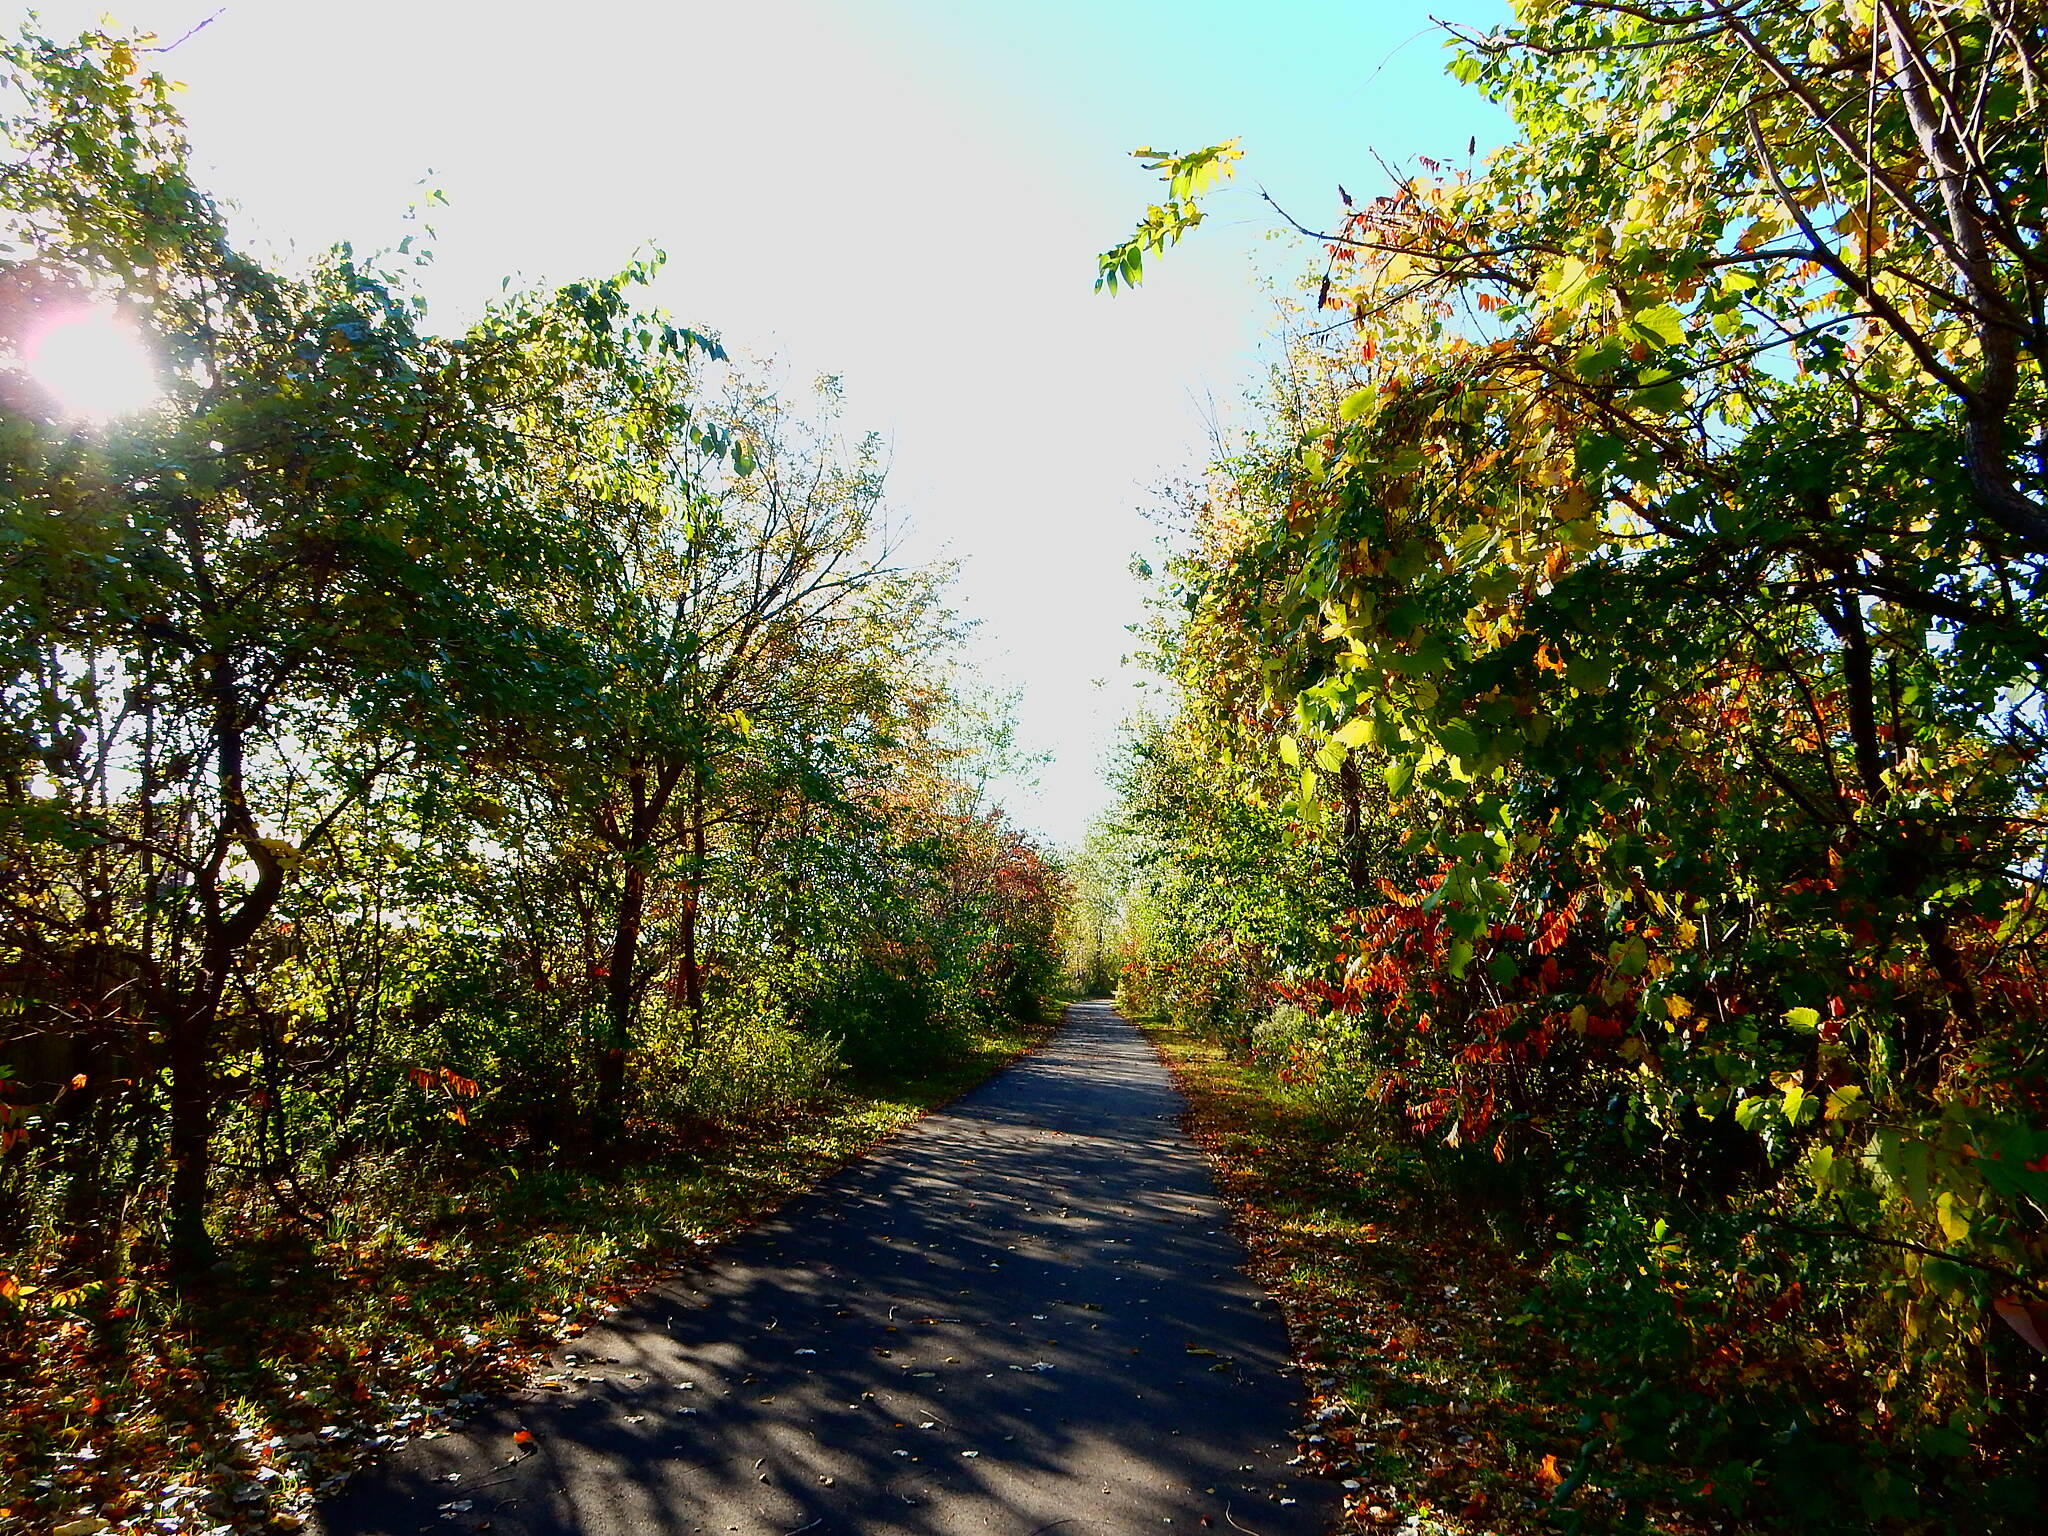 Lake George Trail Heavily wooded. 10-23-16 Just west of the bridge over Indianapolis Blvd. the trail becomes thick with trees on both sides.